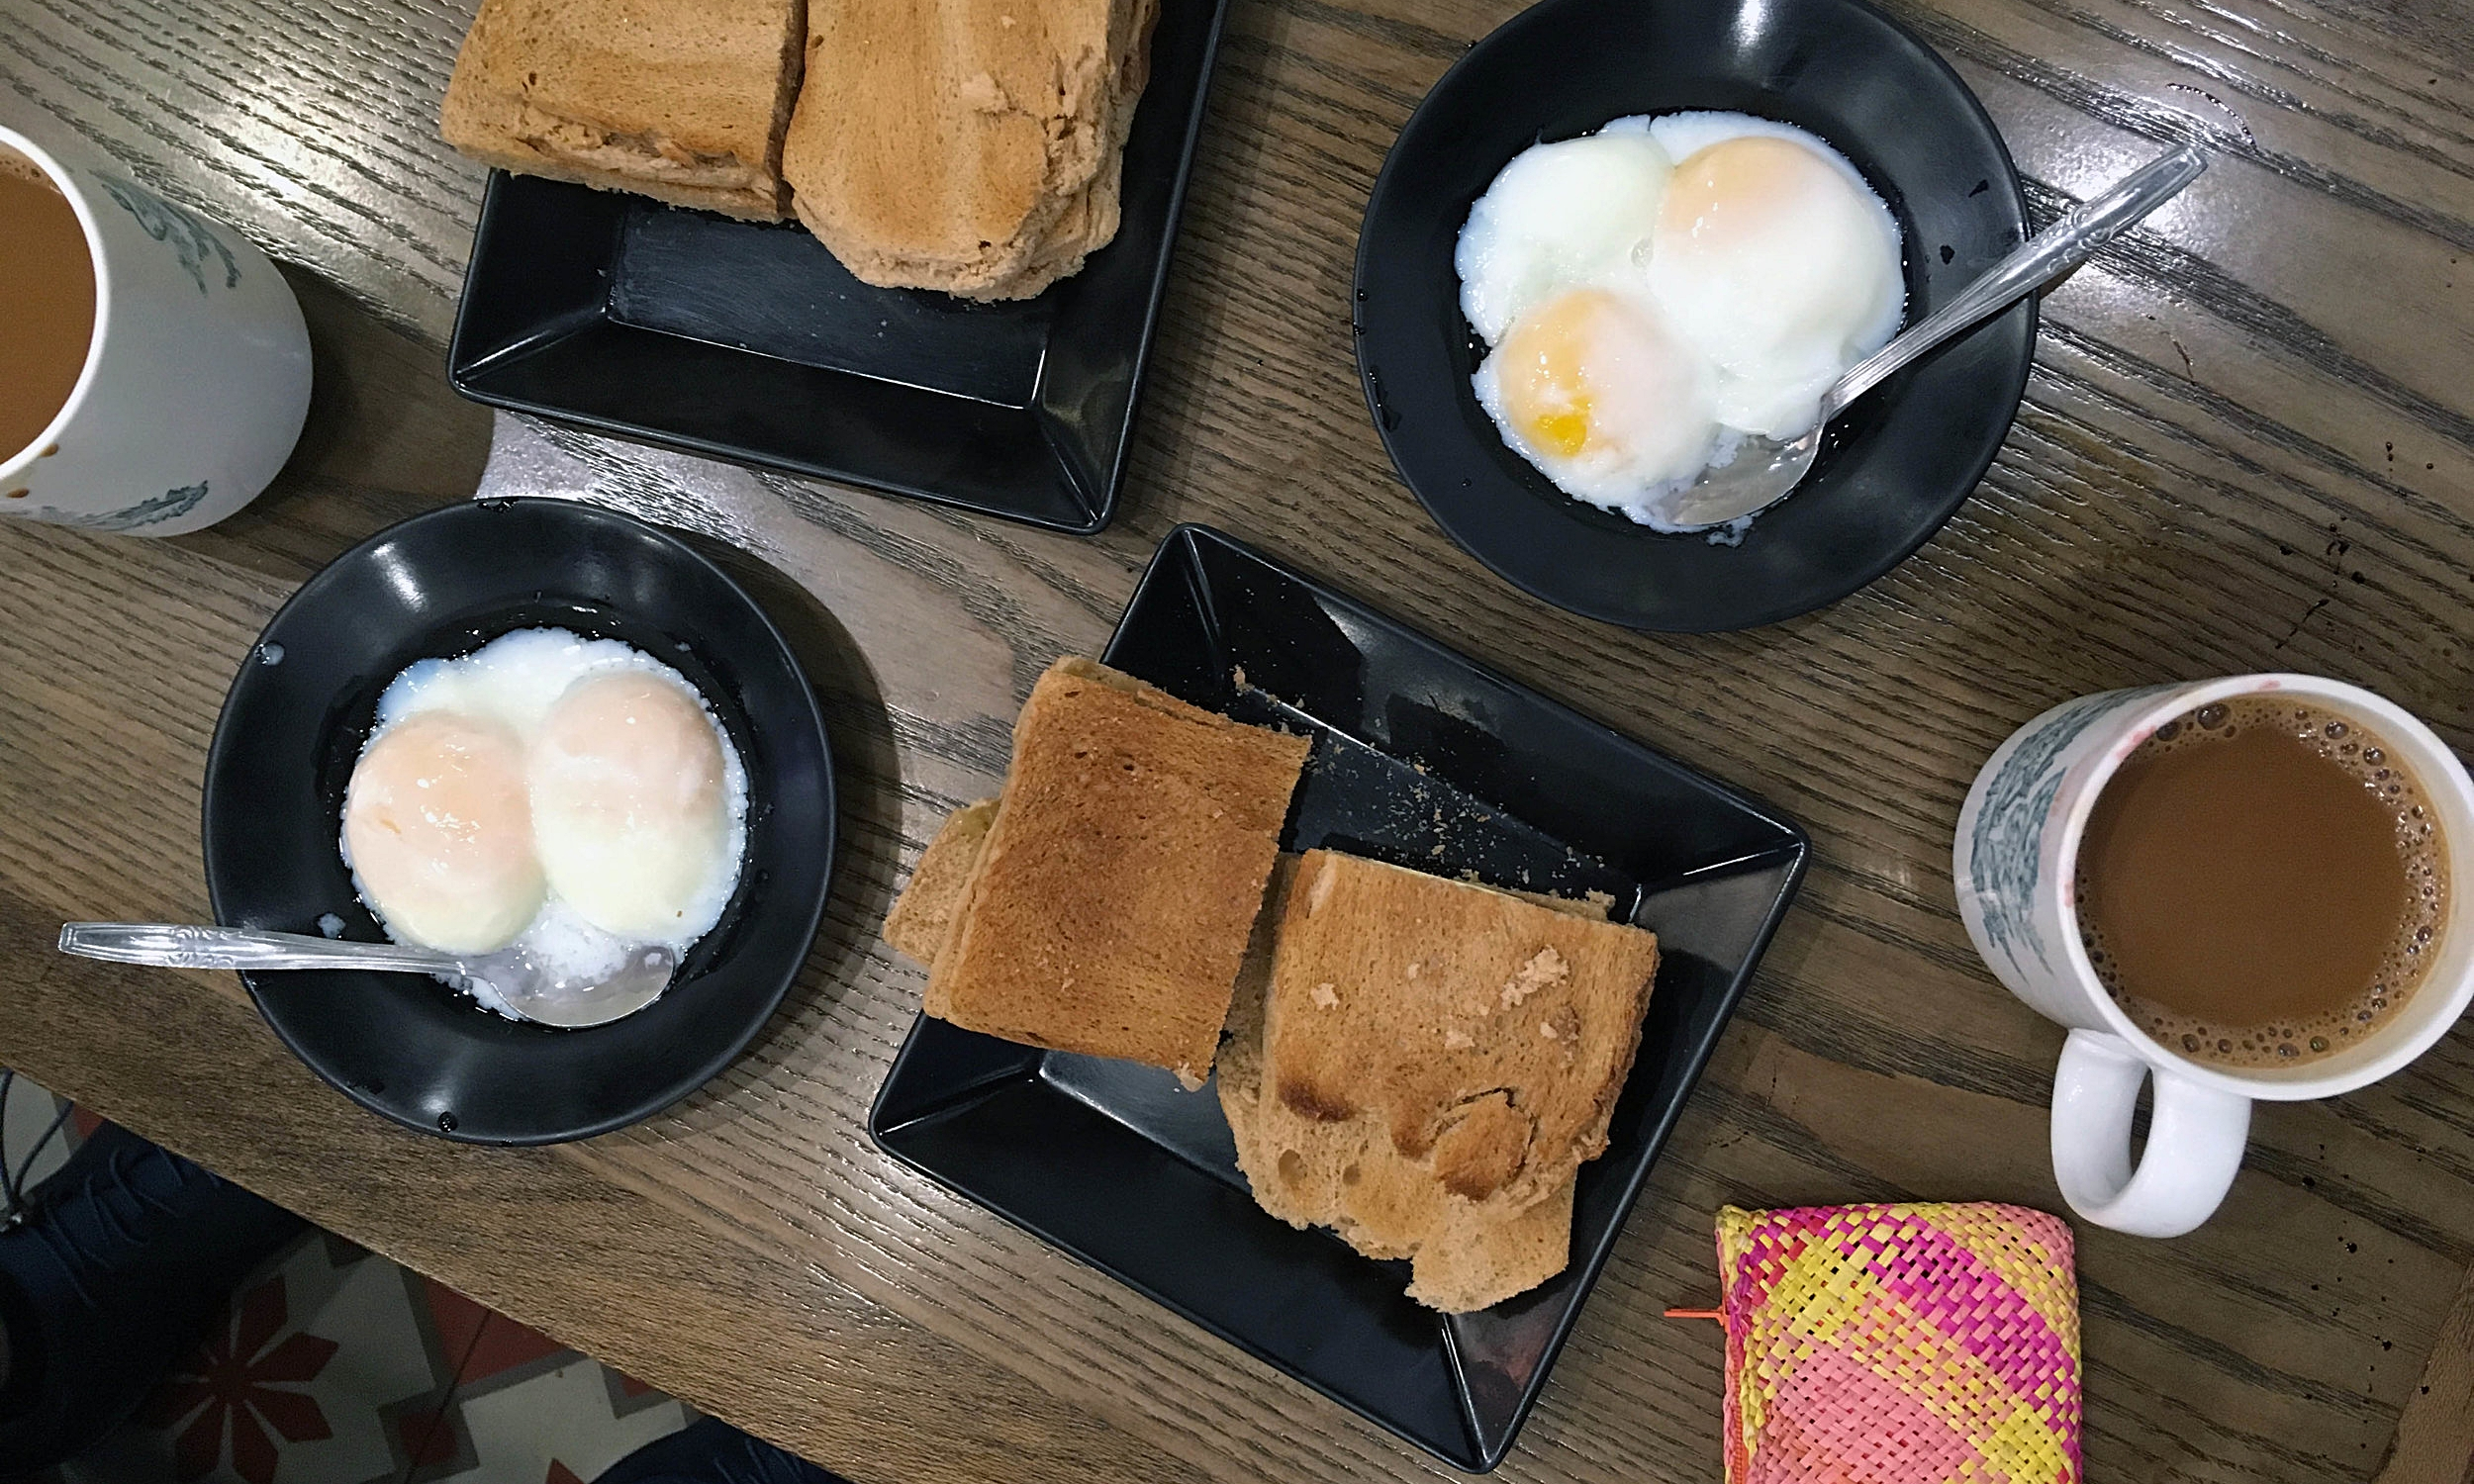 Kaya toast, our very first meal in Singapore